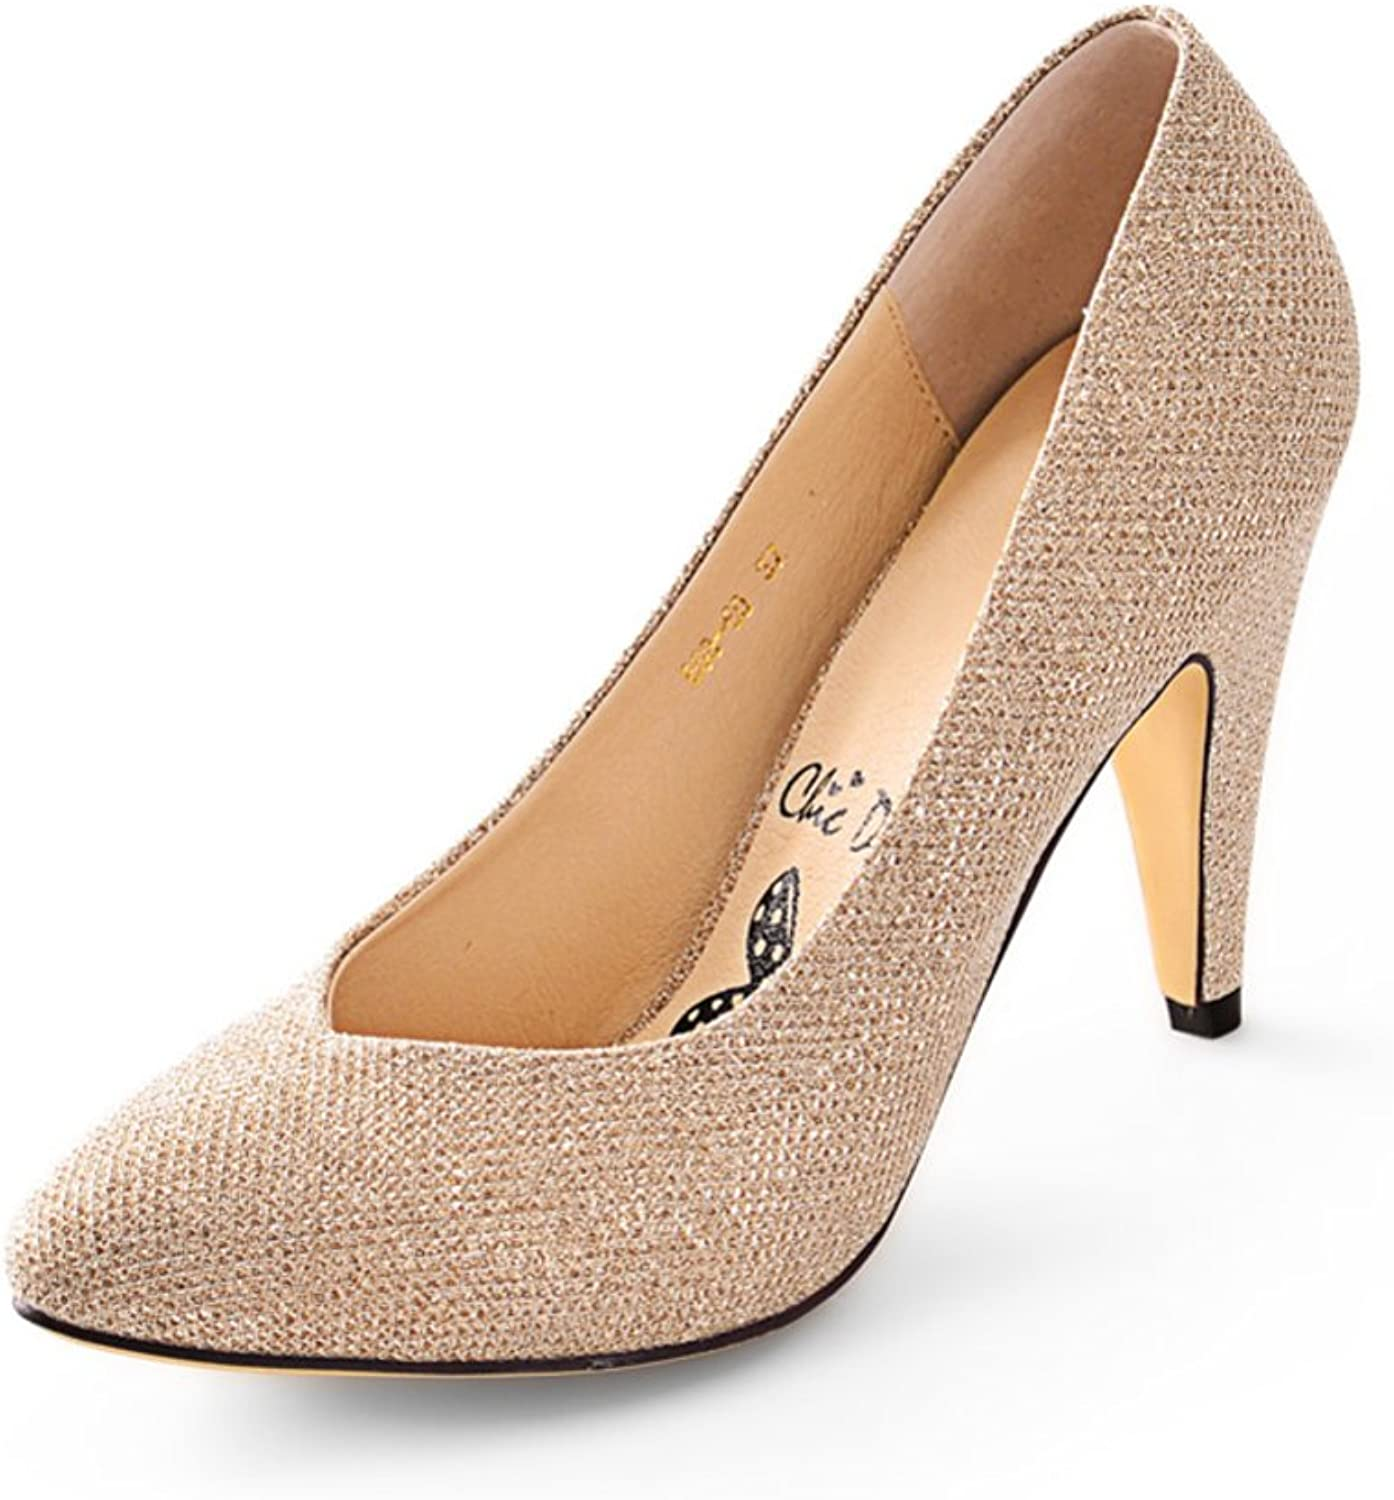 WLJSLLZYQ Elegant Sequin Pointed Stiletto shoes Comfortable shoes with high Light